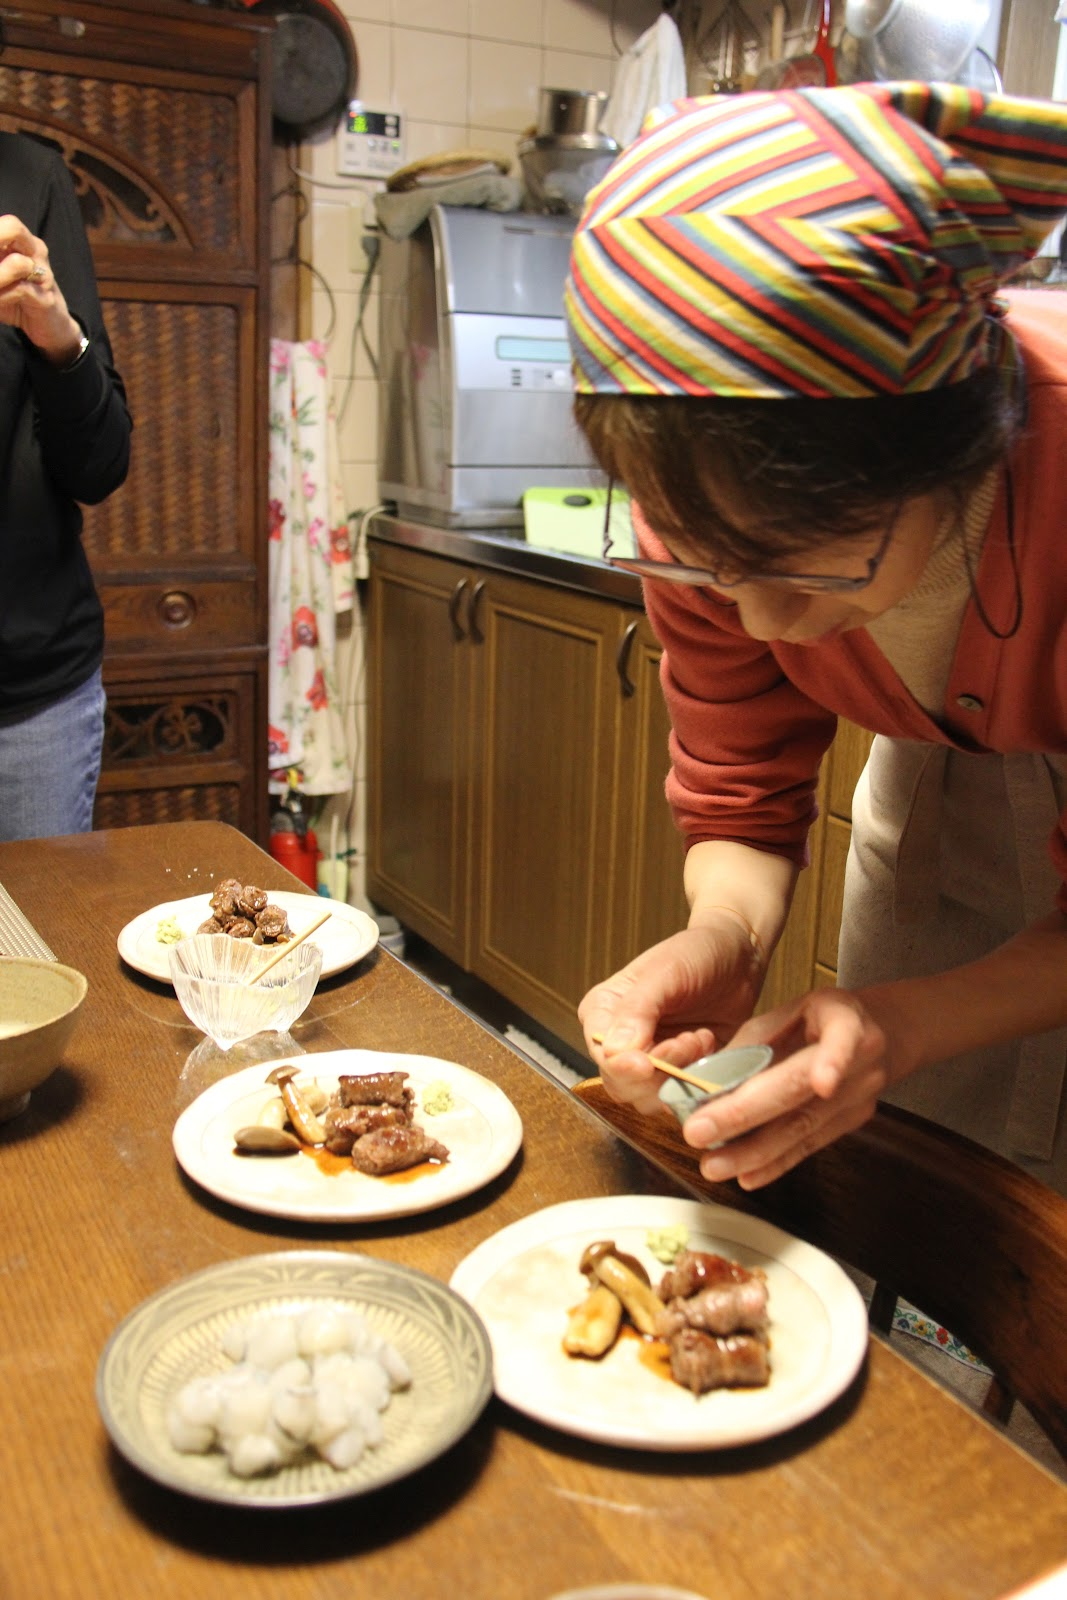 uzuki japanese homestyle cooking classes in kyoto kitchen table cooking school of hours cooking together learning about seasonal cuisine and the wonders of Kyoto before enjoying a meal around the kitchen table sampling our wares